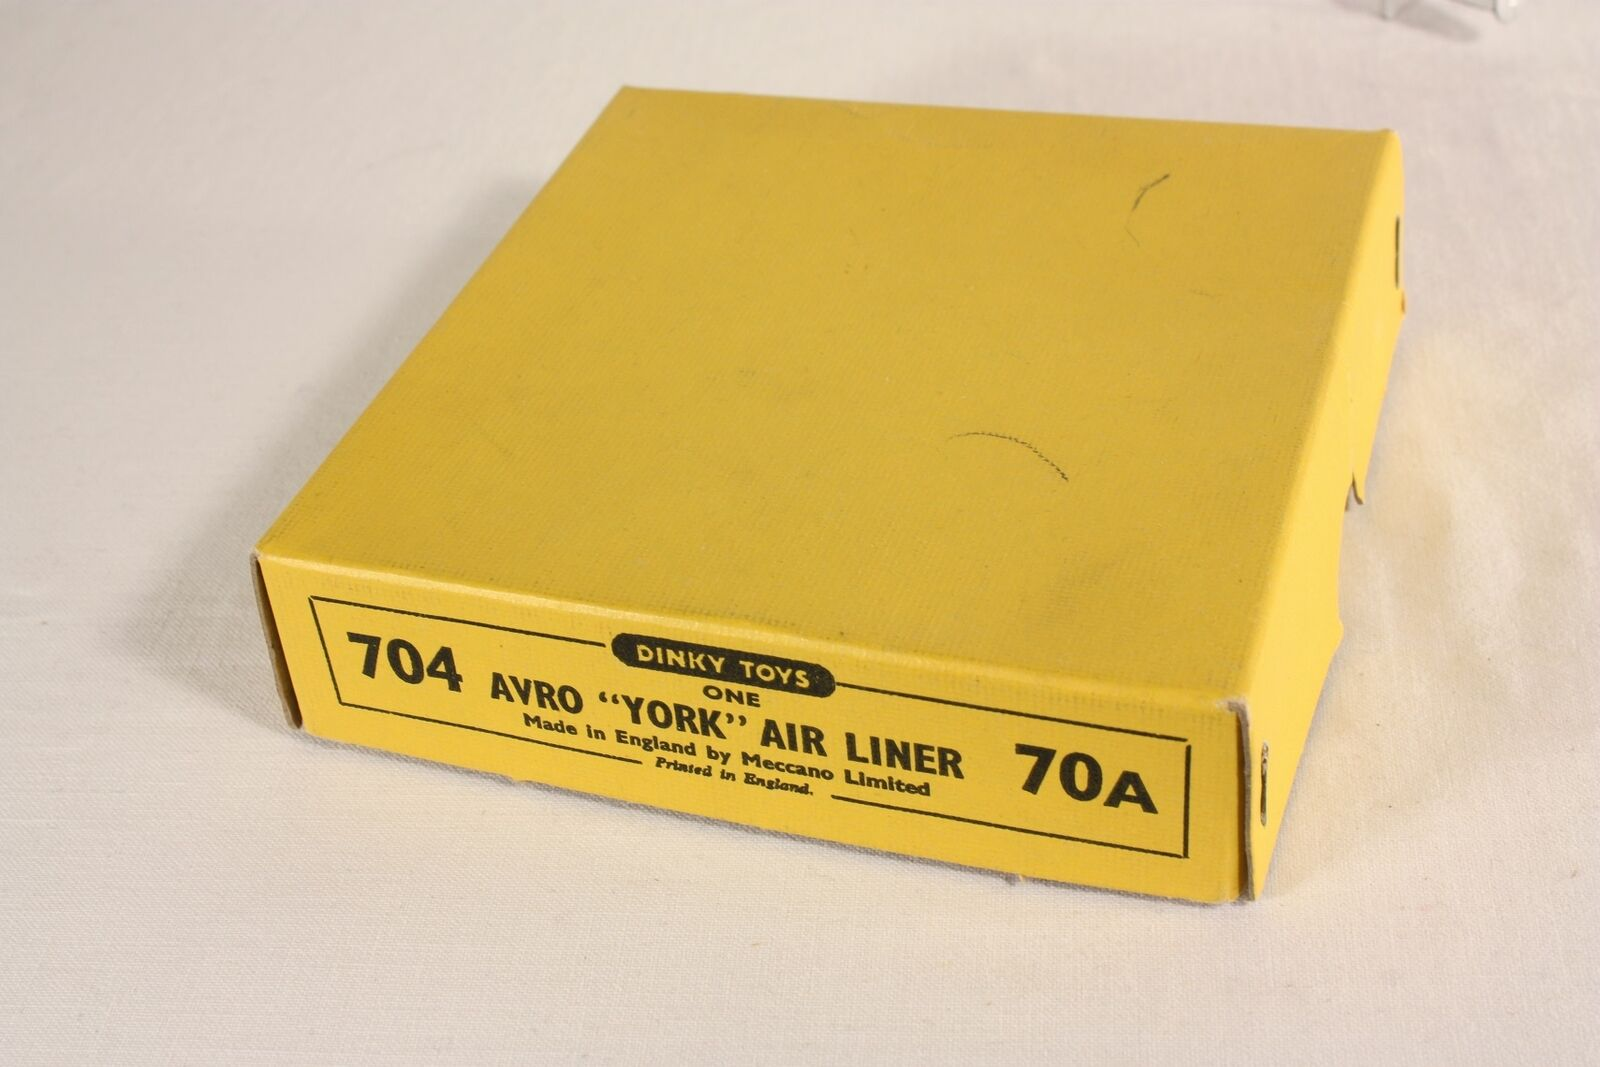 Dinky Toys 704, 704, 704, Avro  York  Air Liner,  70 A, Mint in Box                  ab590 267508